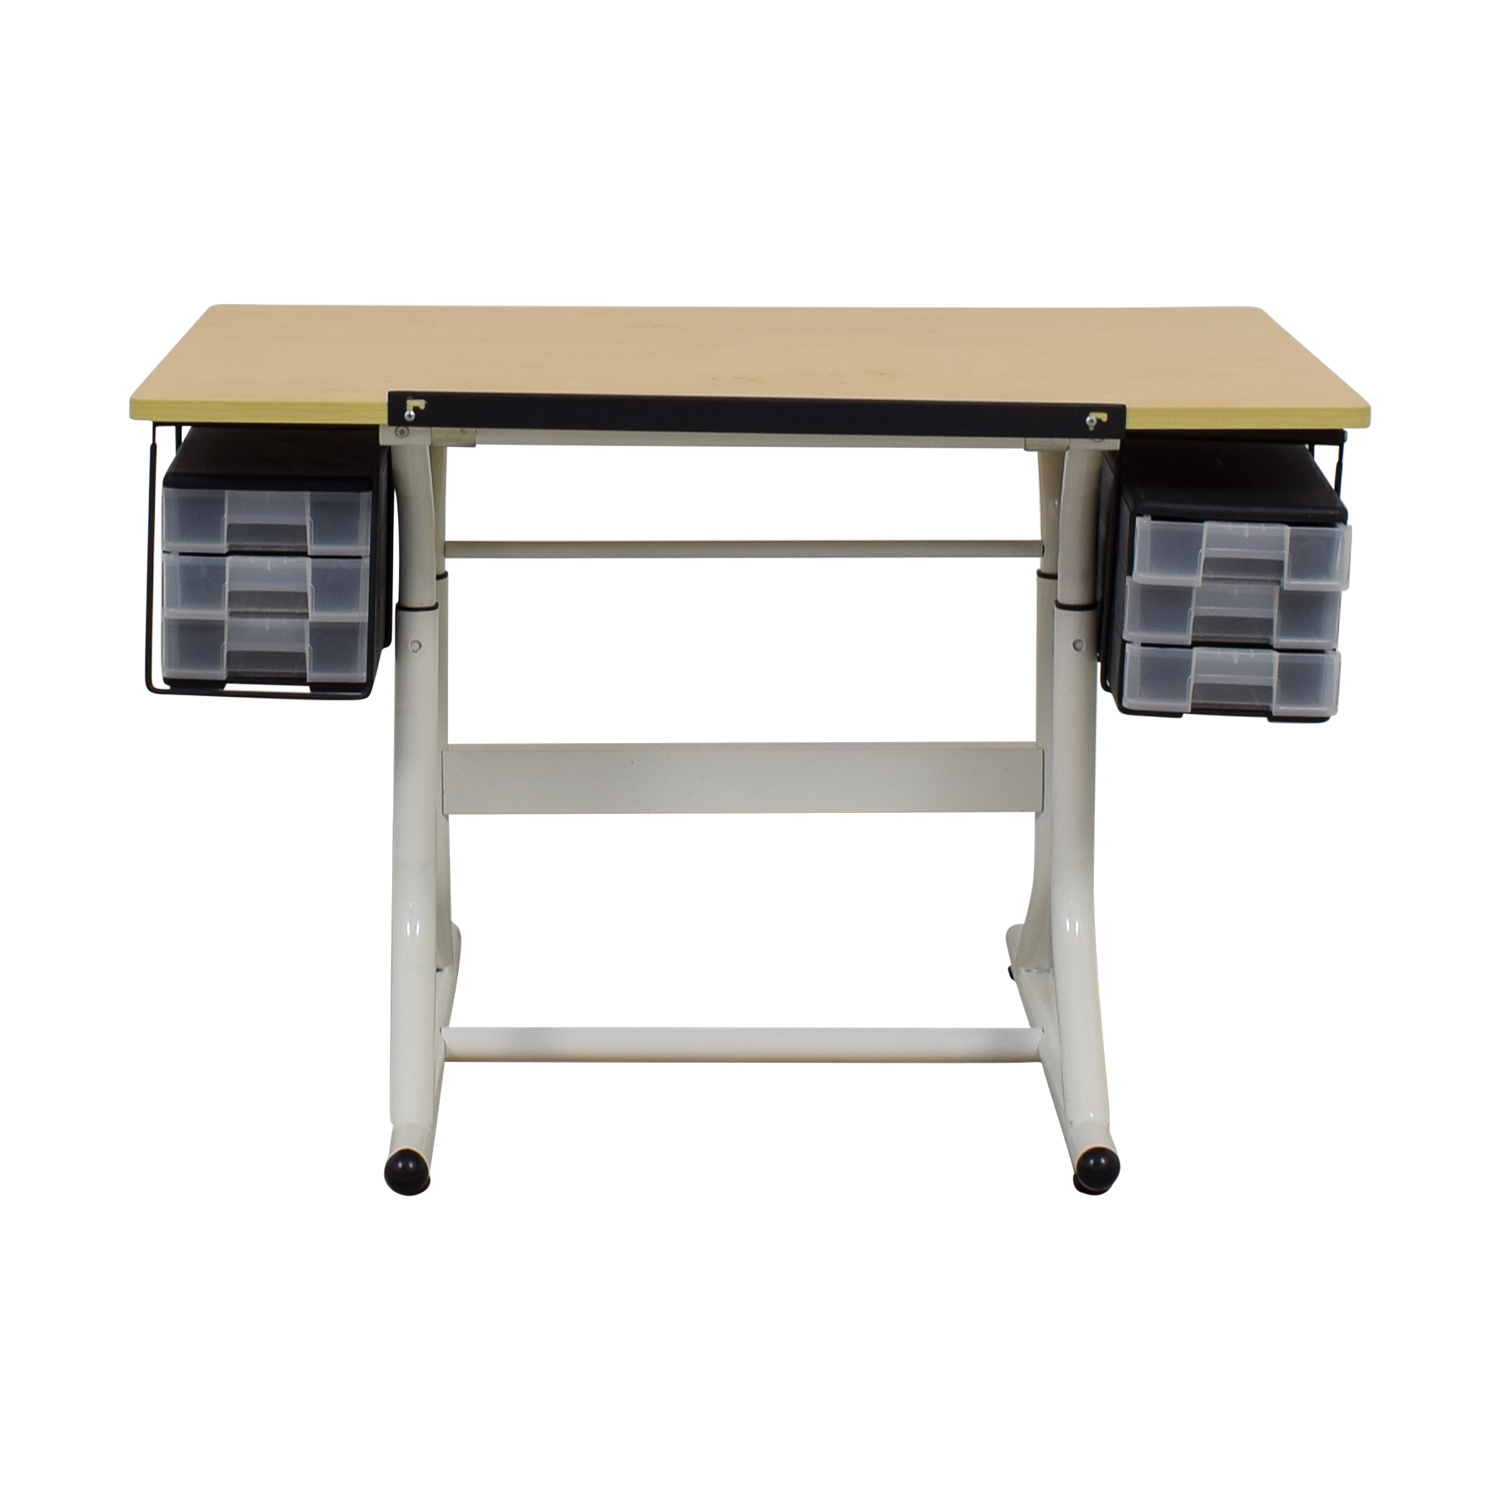 Alvin Home Office CraftMaster Alvin Home Office CraftMaster Art and Hobby Table on sale